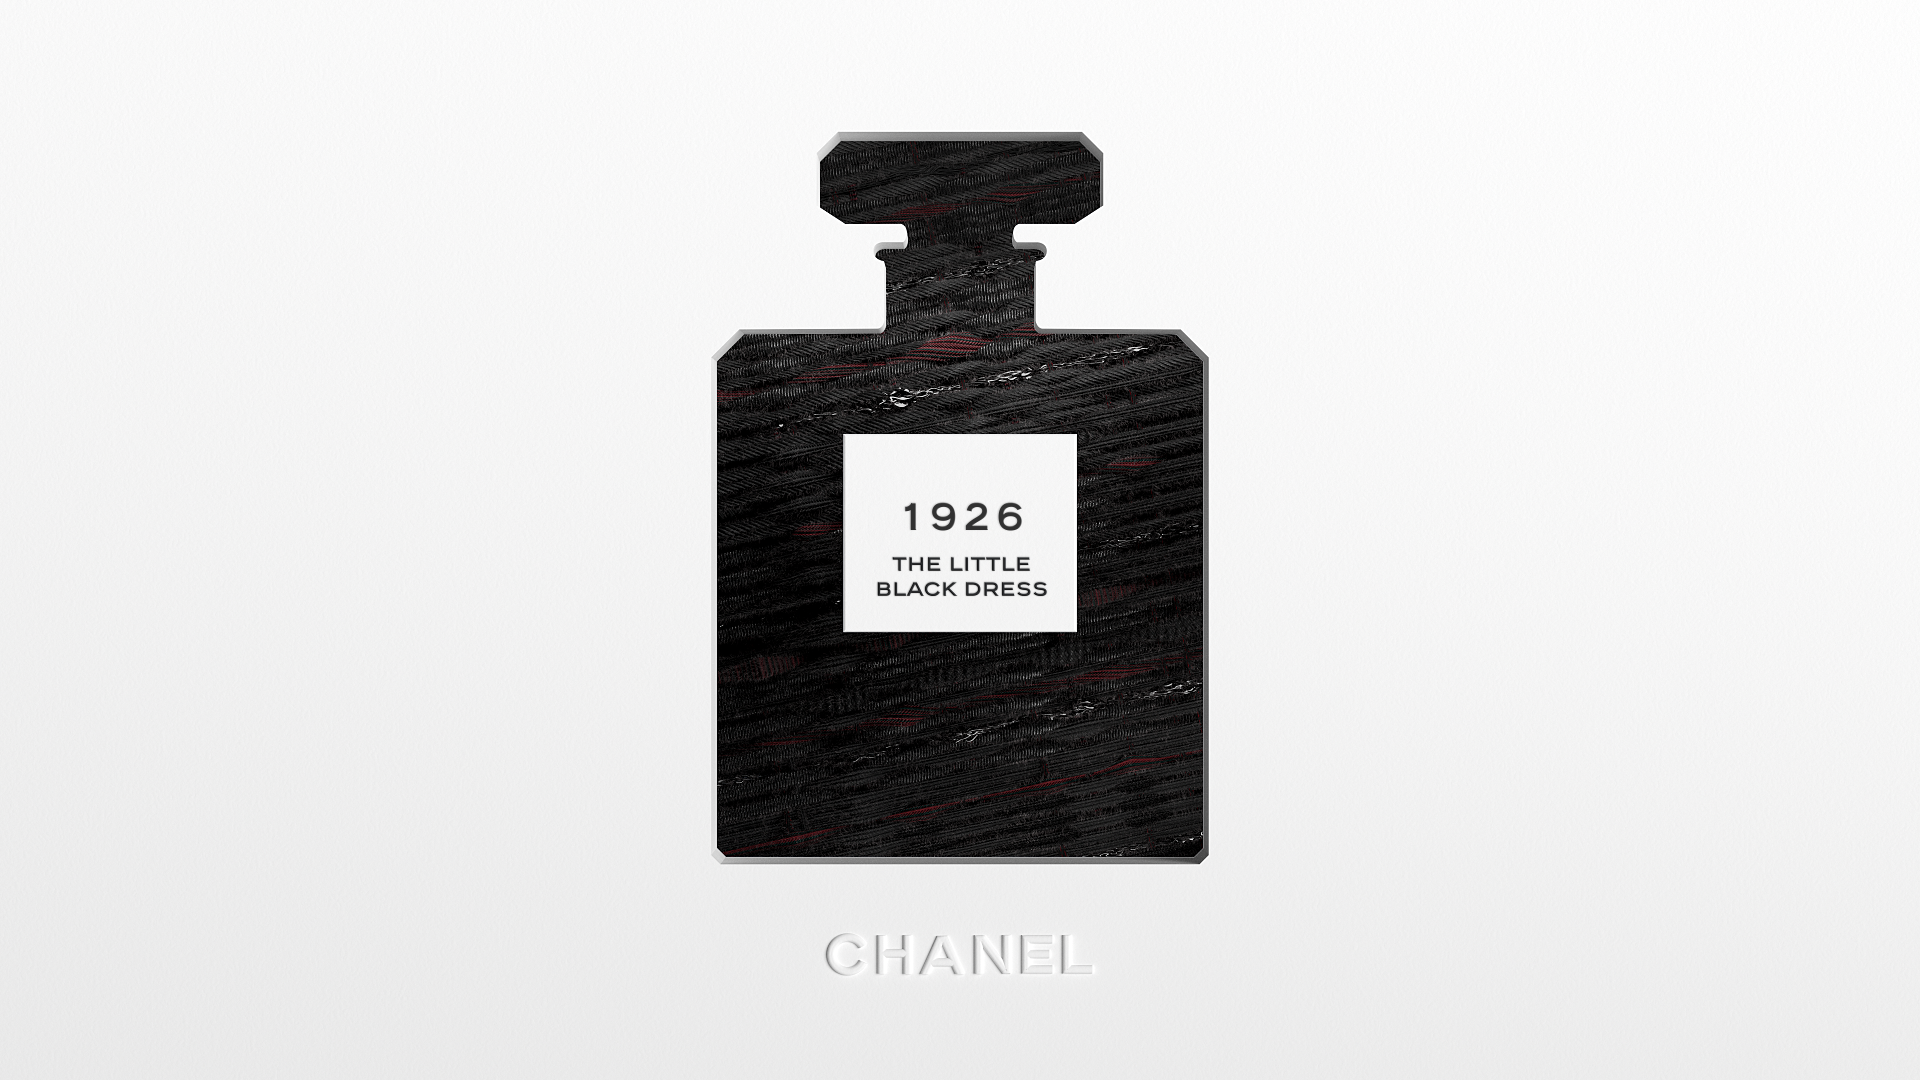 BC1015 Chanel - Best Wishes_16-9_00239.png